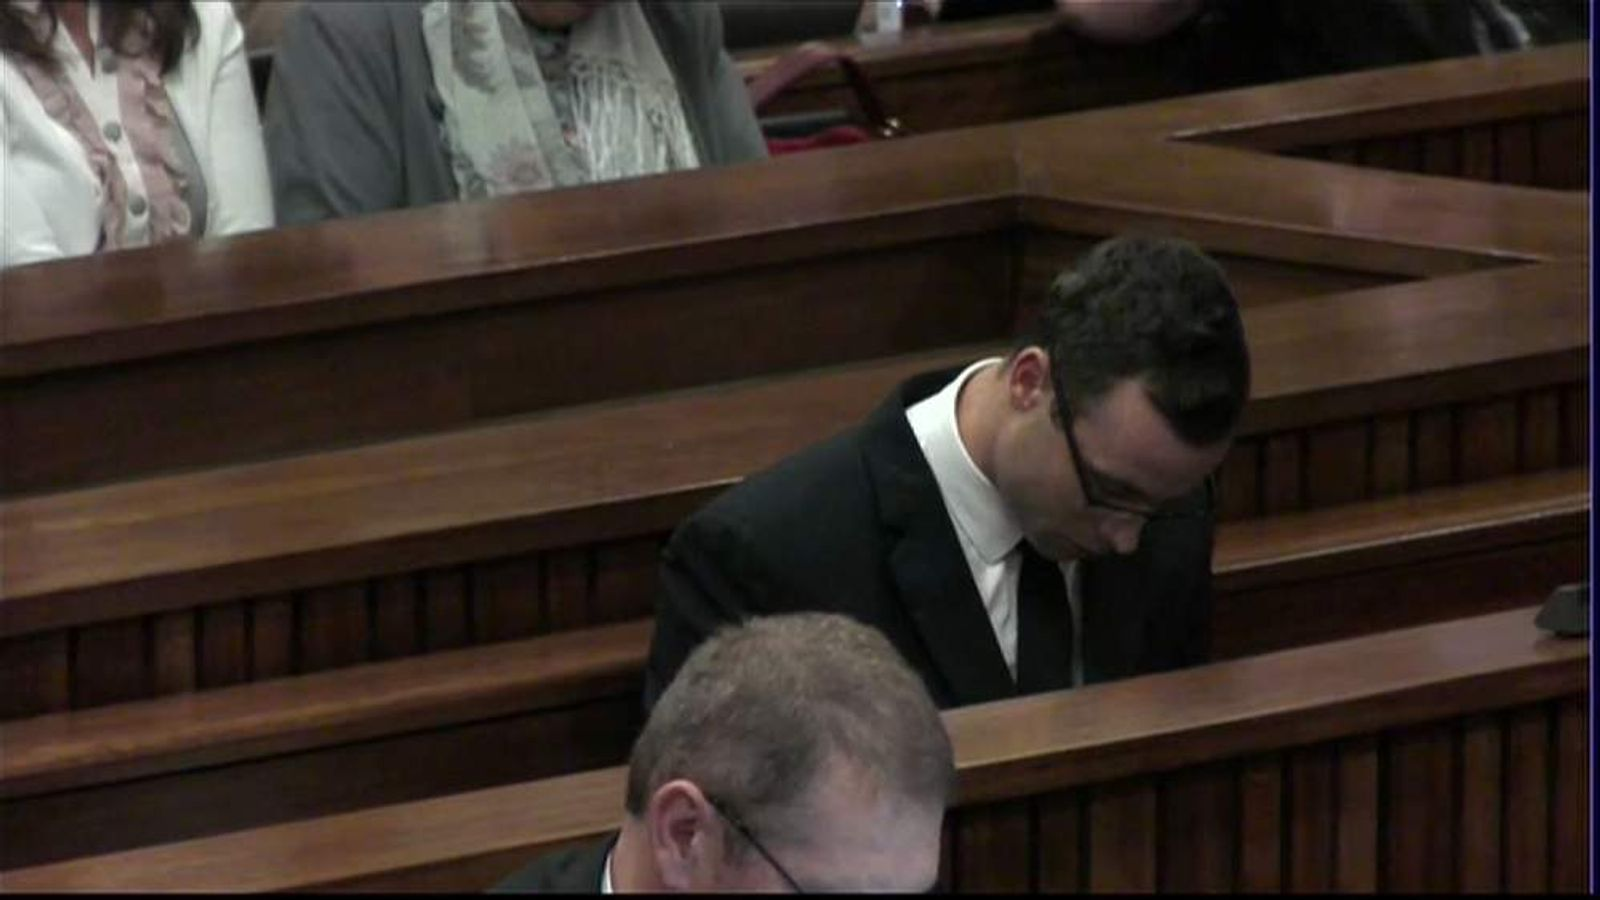 Oscar Pistorius pictured in court